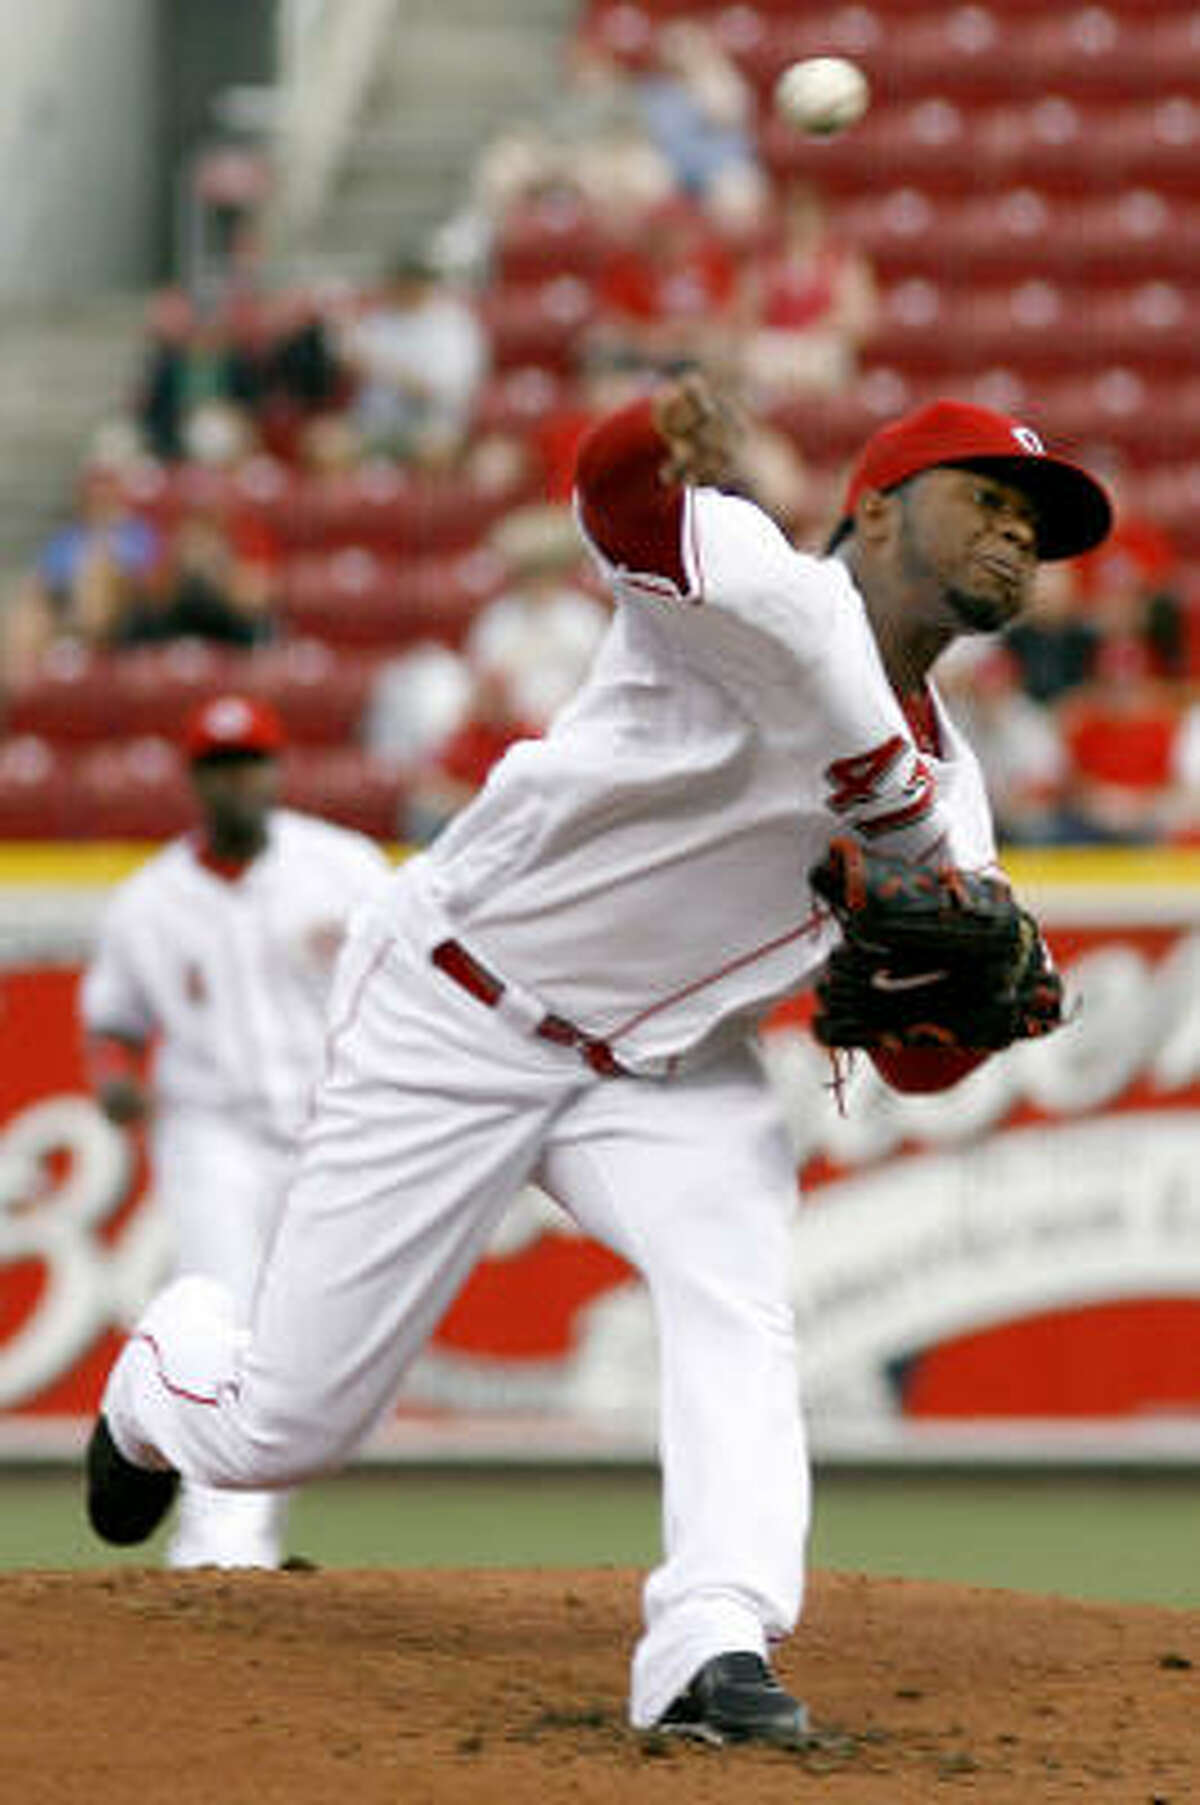 Reds starter Johnny Cueto was handed a no-decision after limiting the Astros to one run on seven hits in seven innings.